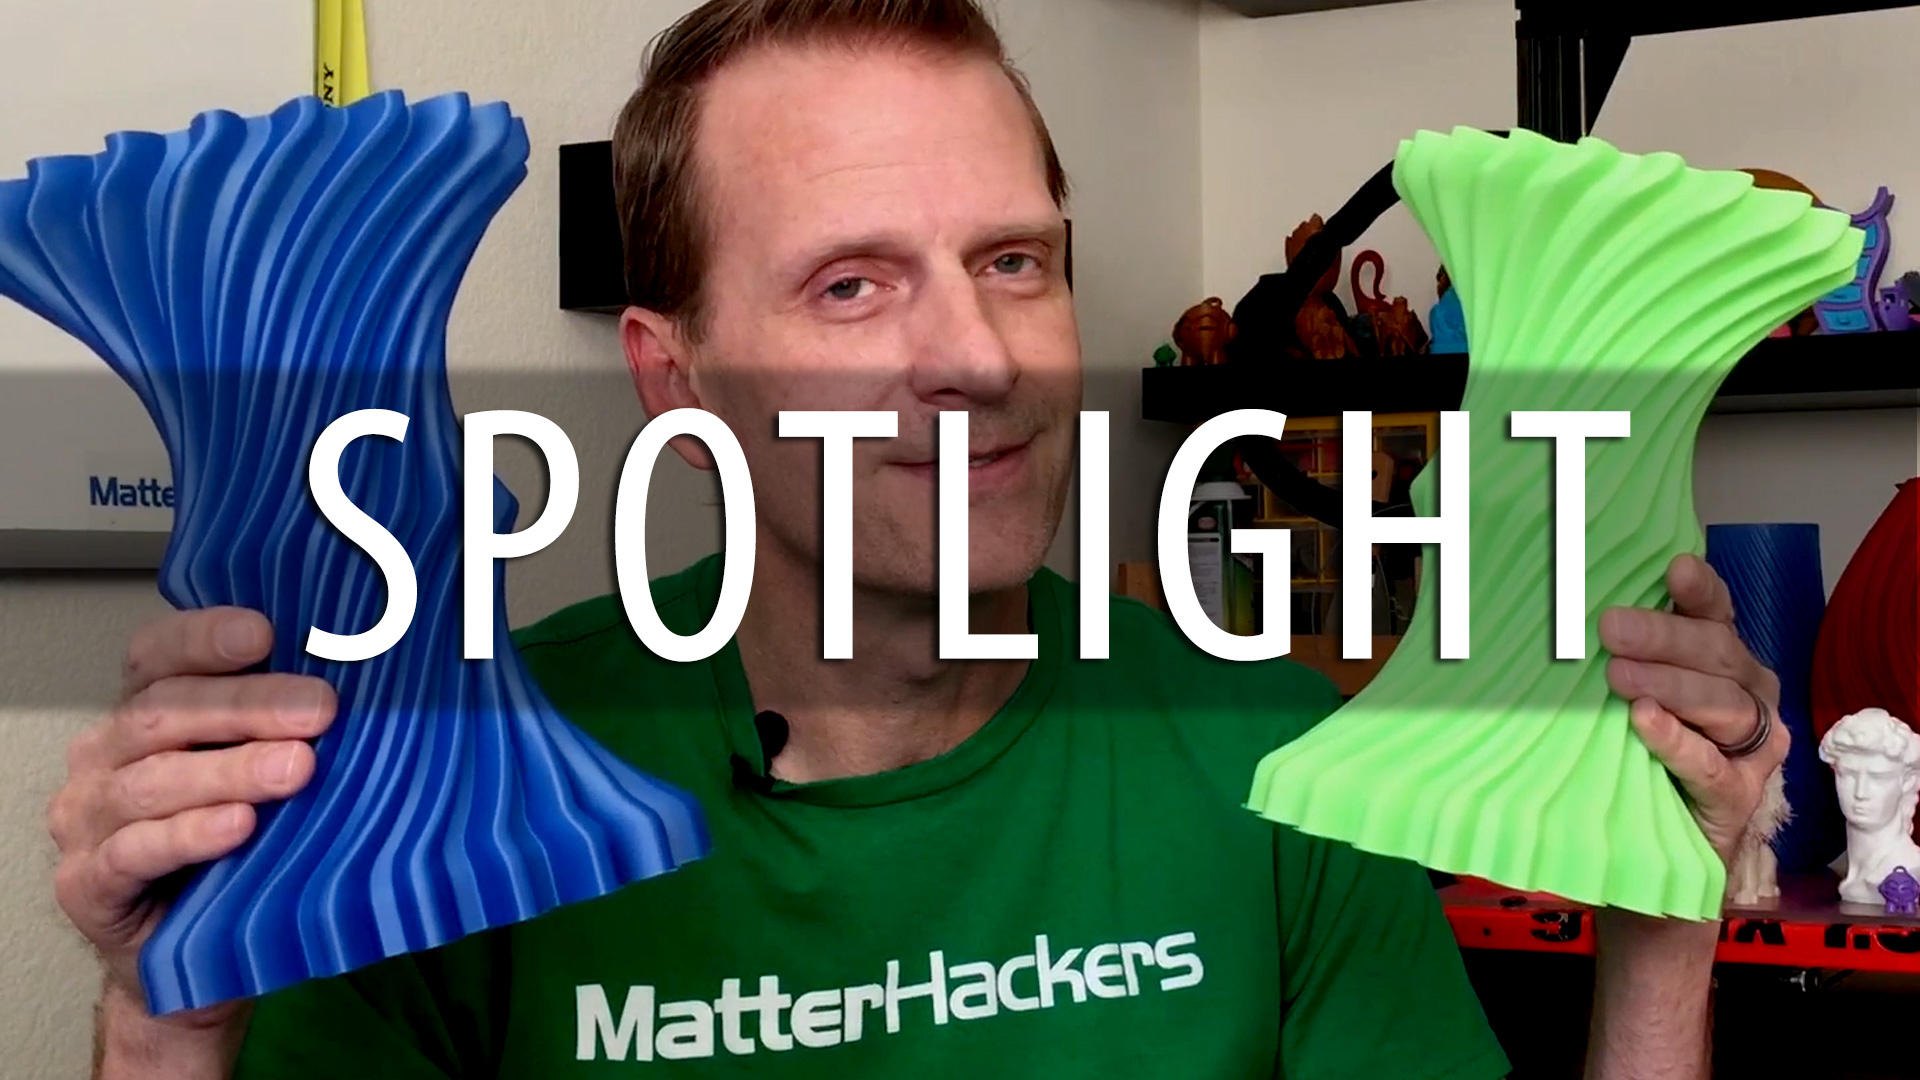 3D Printing Spotlight: Print 3D Channel